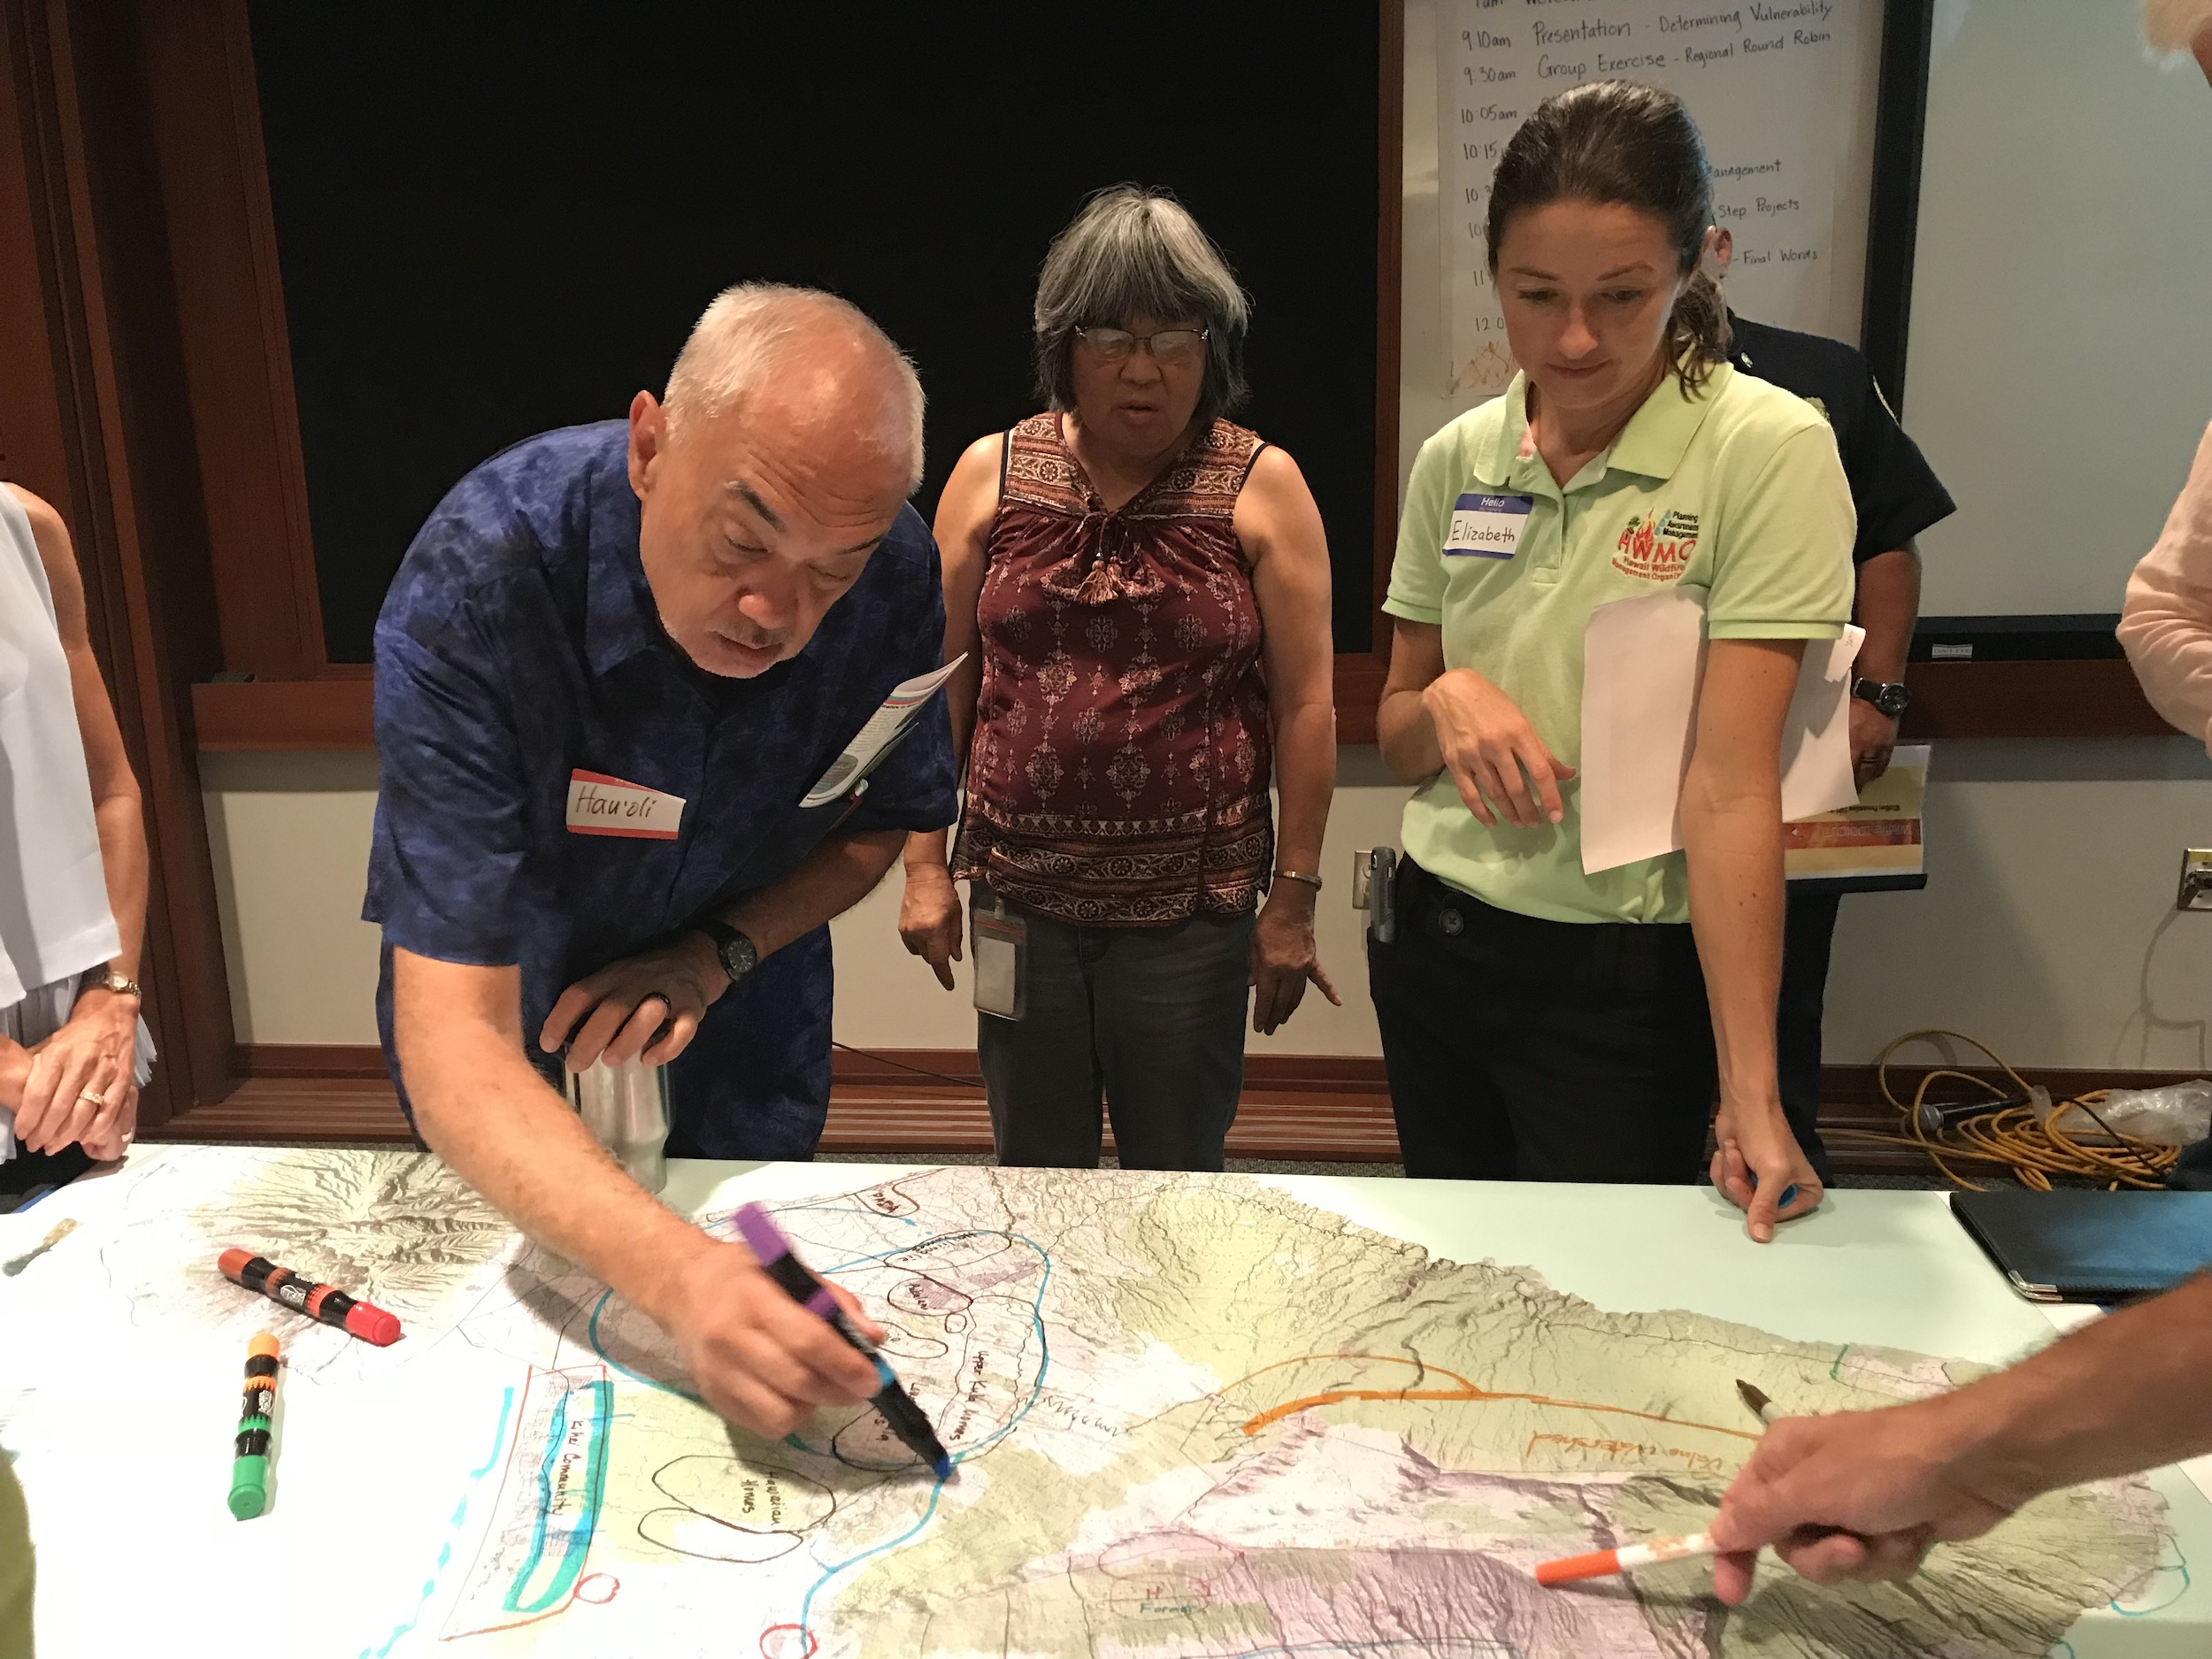 Maui Vegetative Fuels Management Collaborative Action Planning Meeting_2018_9_27_18_Outlining areas for protection.jpeg